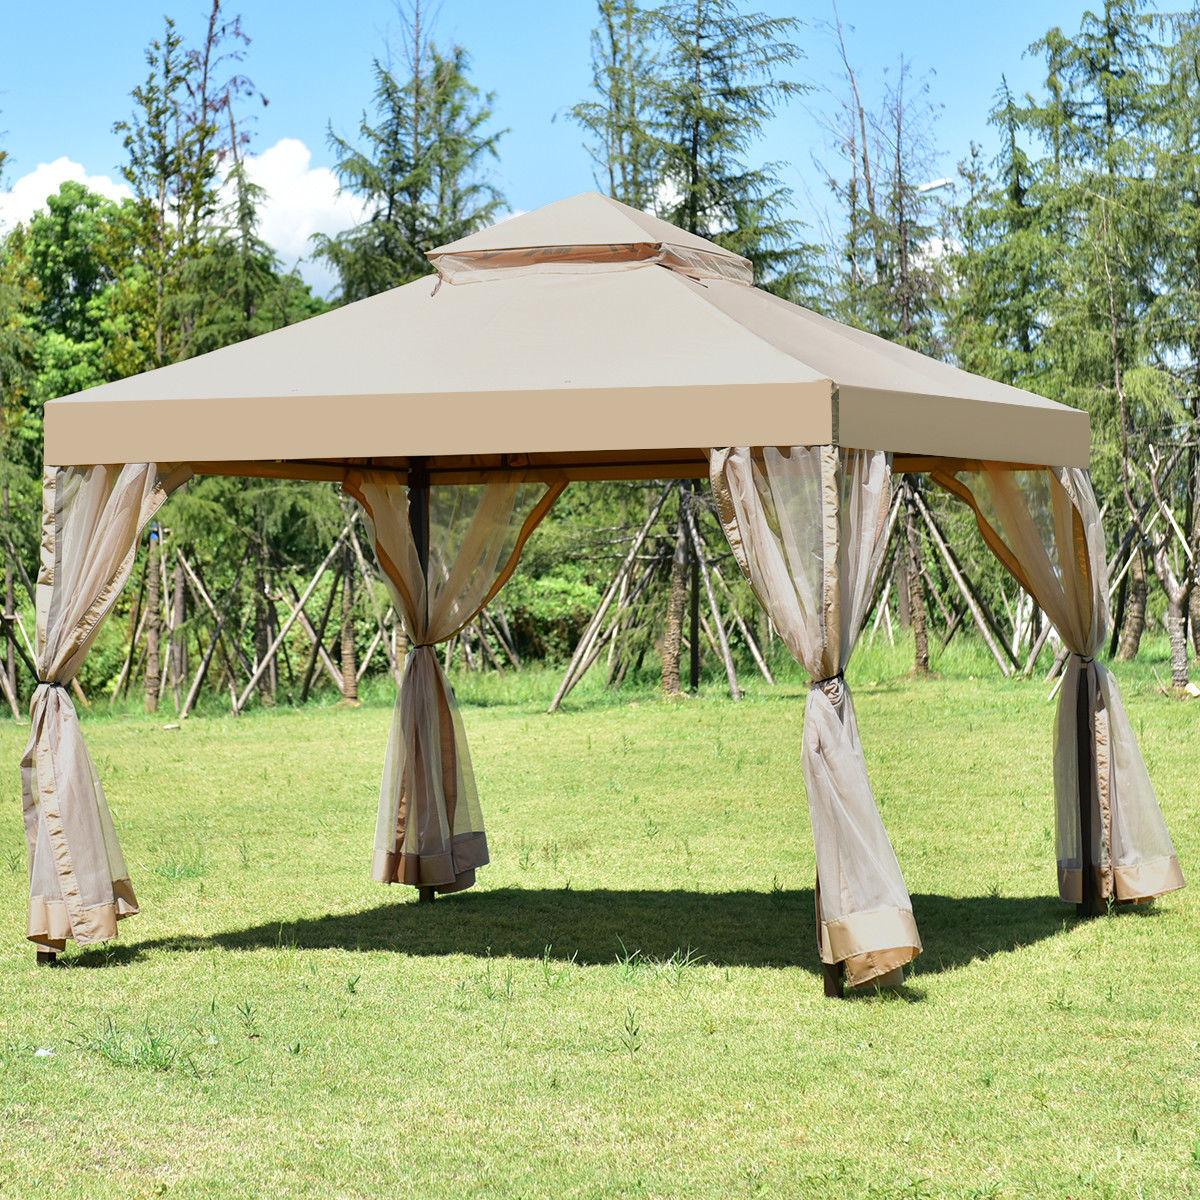 Product Image Costway Outdoor 2 Tier 10u0027x10u0027 Gazebo Canopy Shelter Awning  Tent Patio Garden